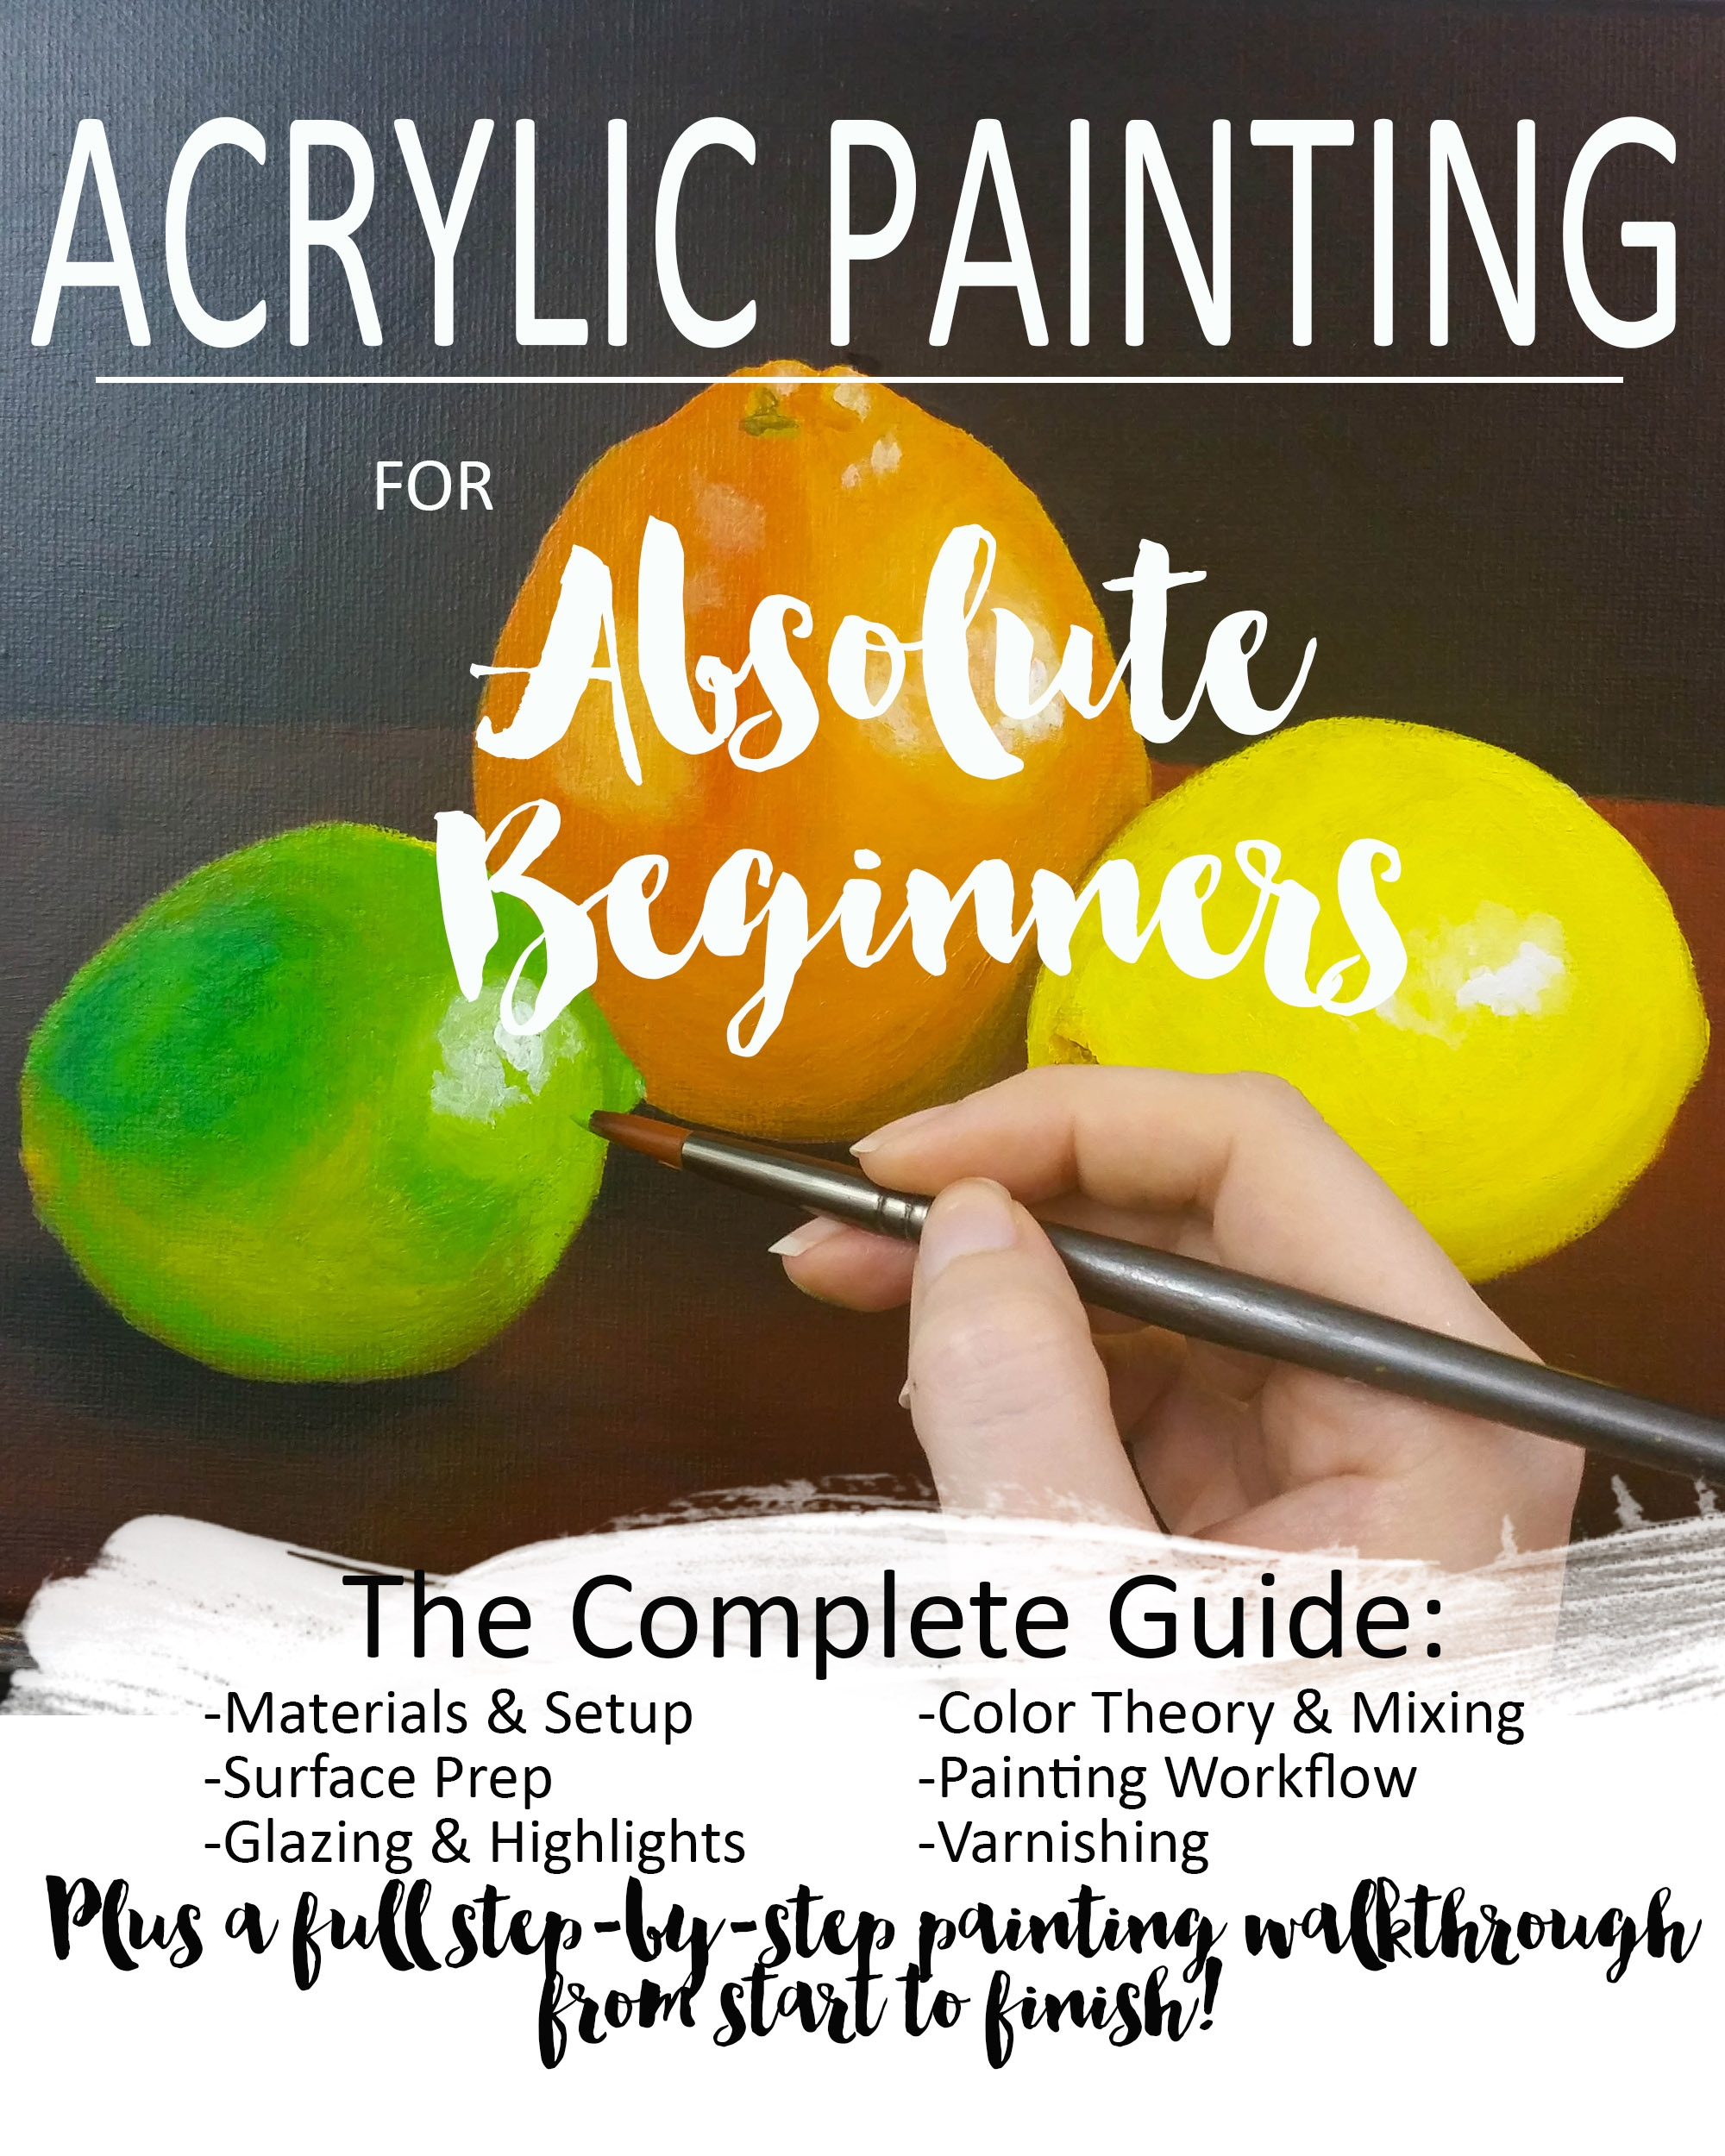 Best Books To Learn Acrylic Painting - Defendbigbird.com